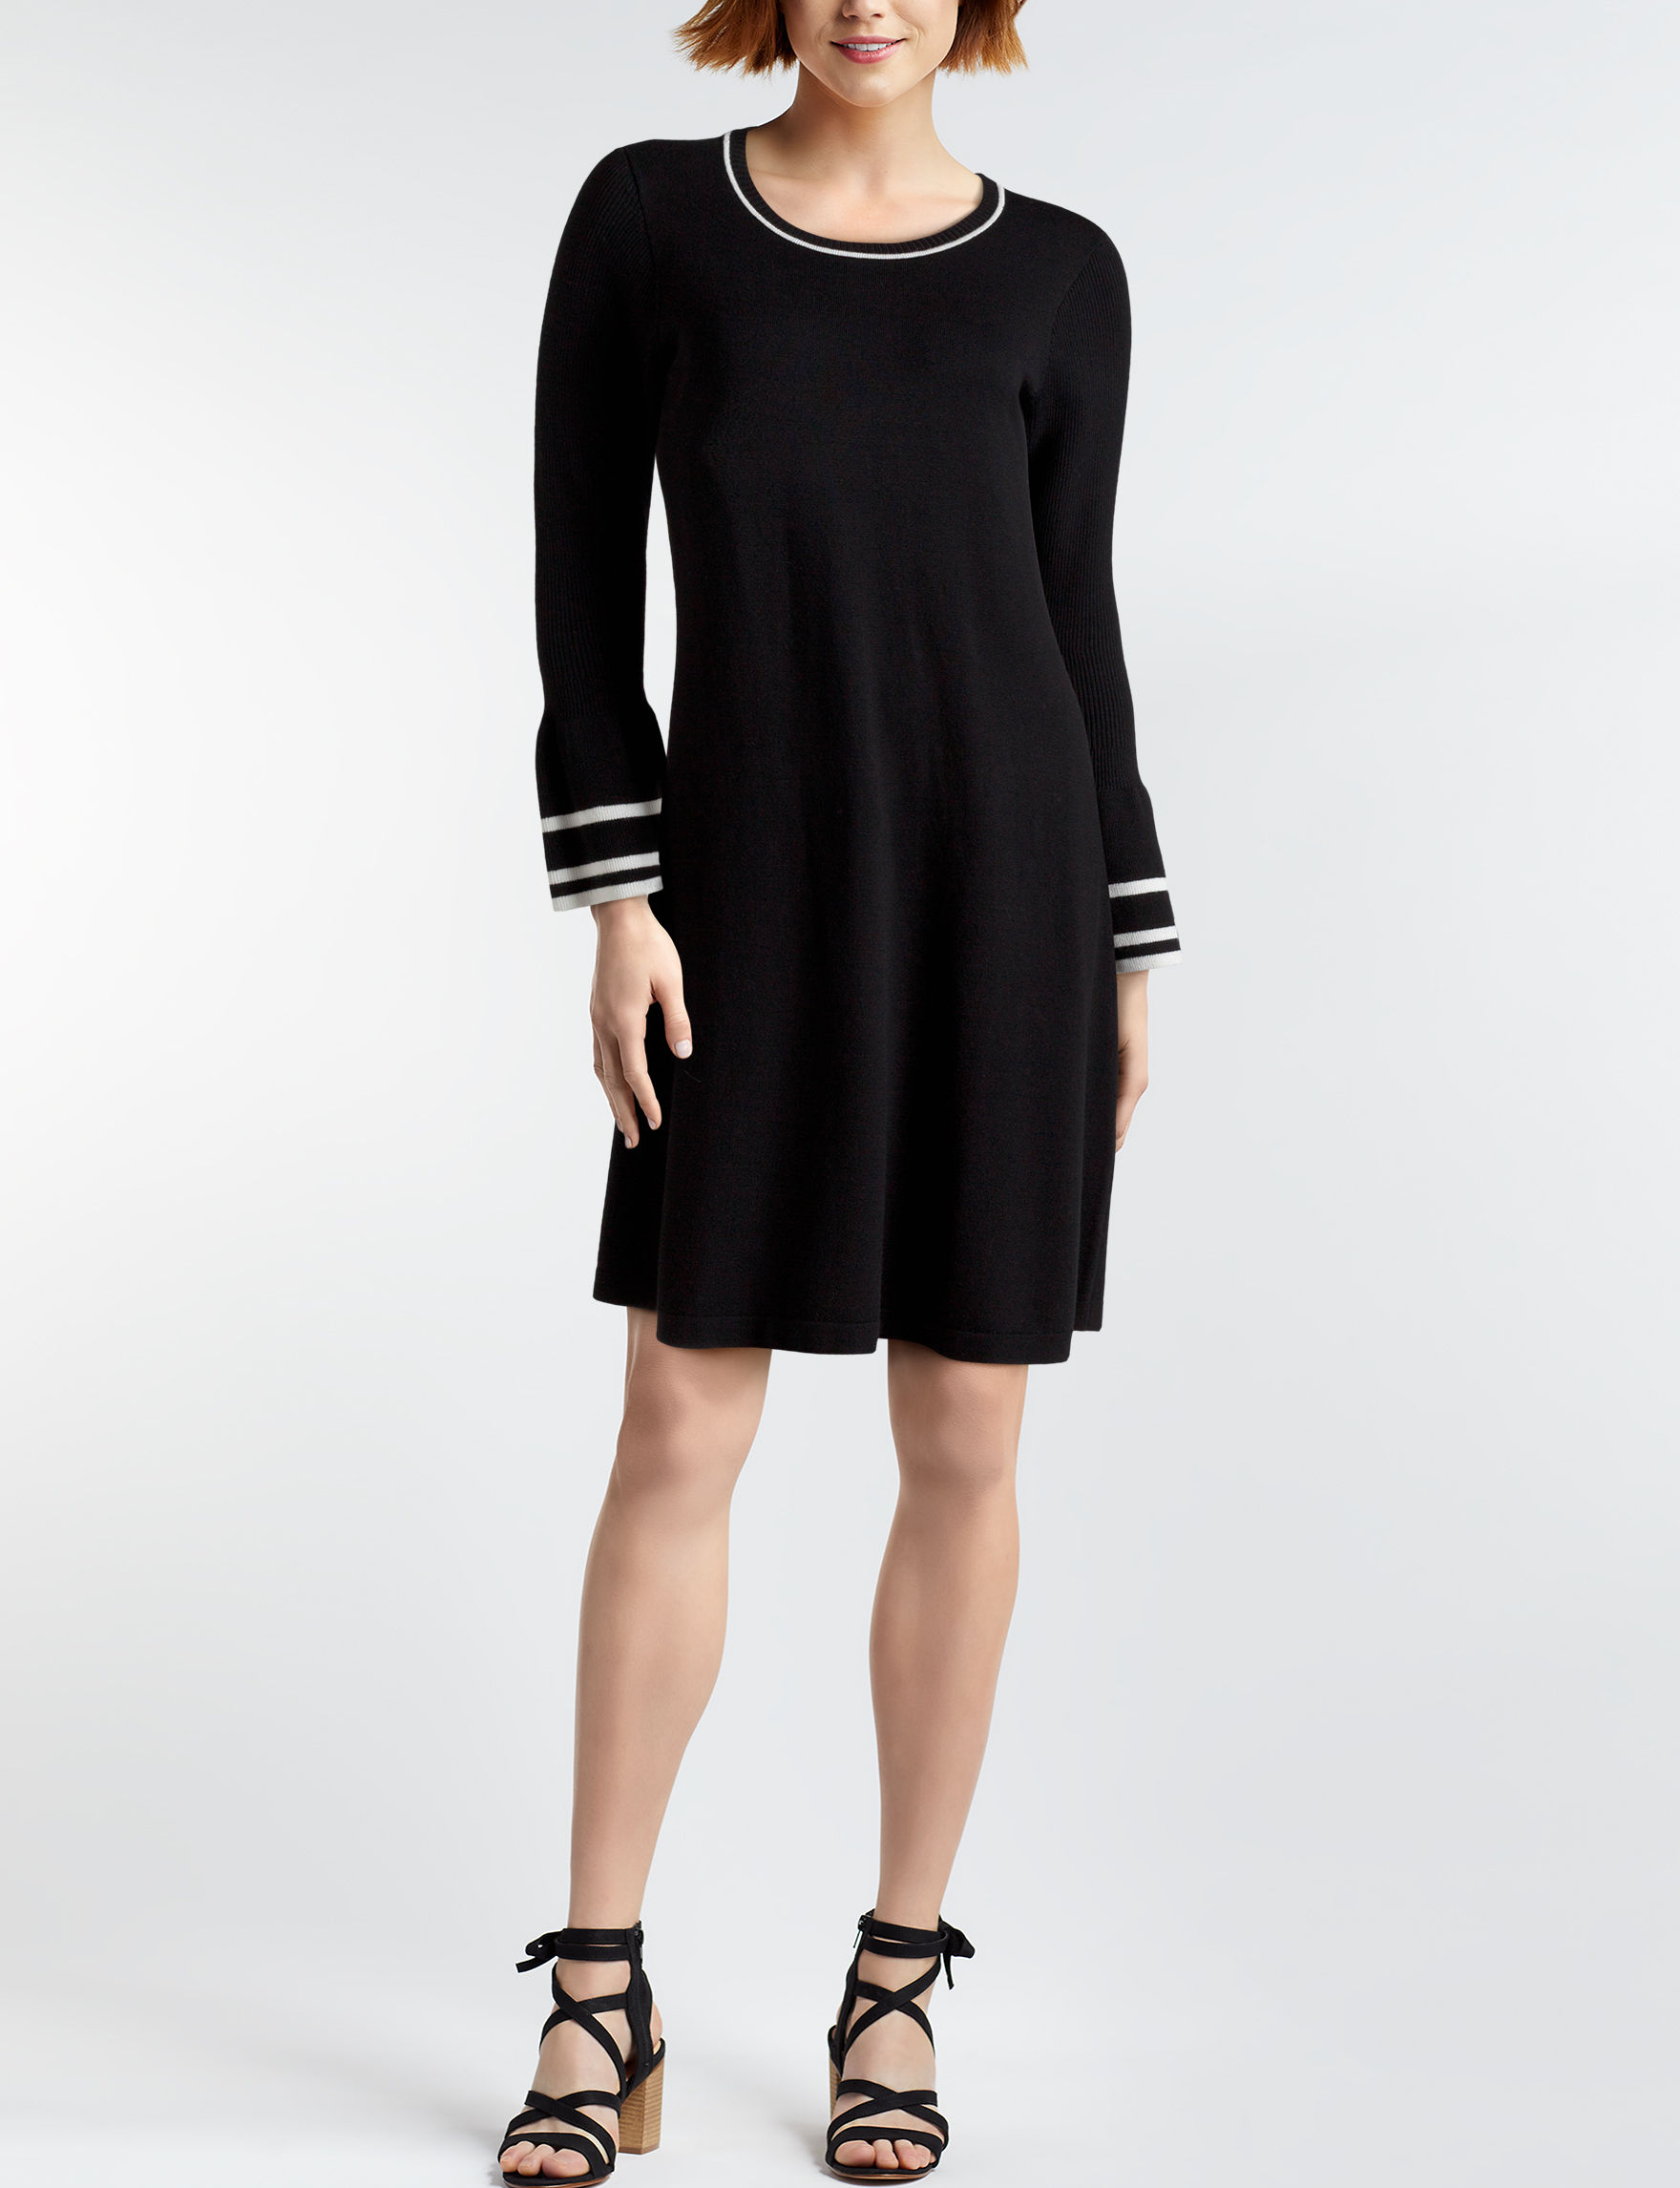 AGB Black Everyday & Casual A-line Dresses Fit & Flare Dresses Sweater Dresses